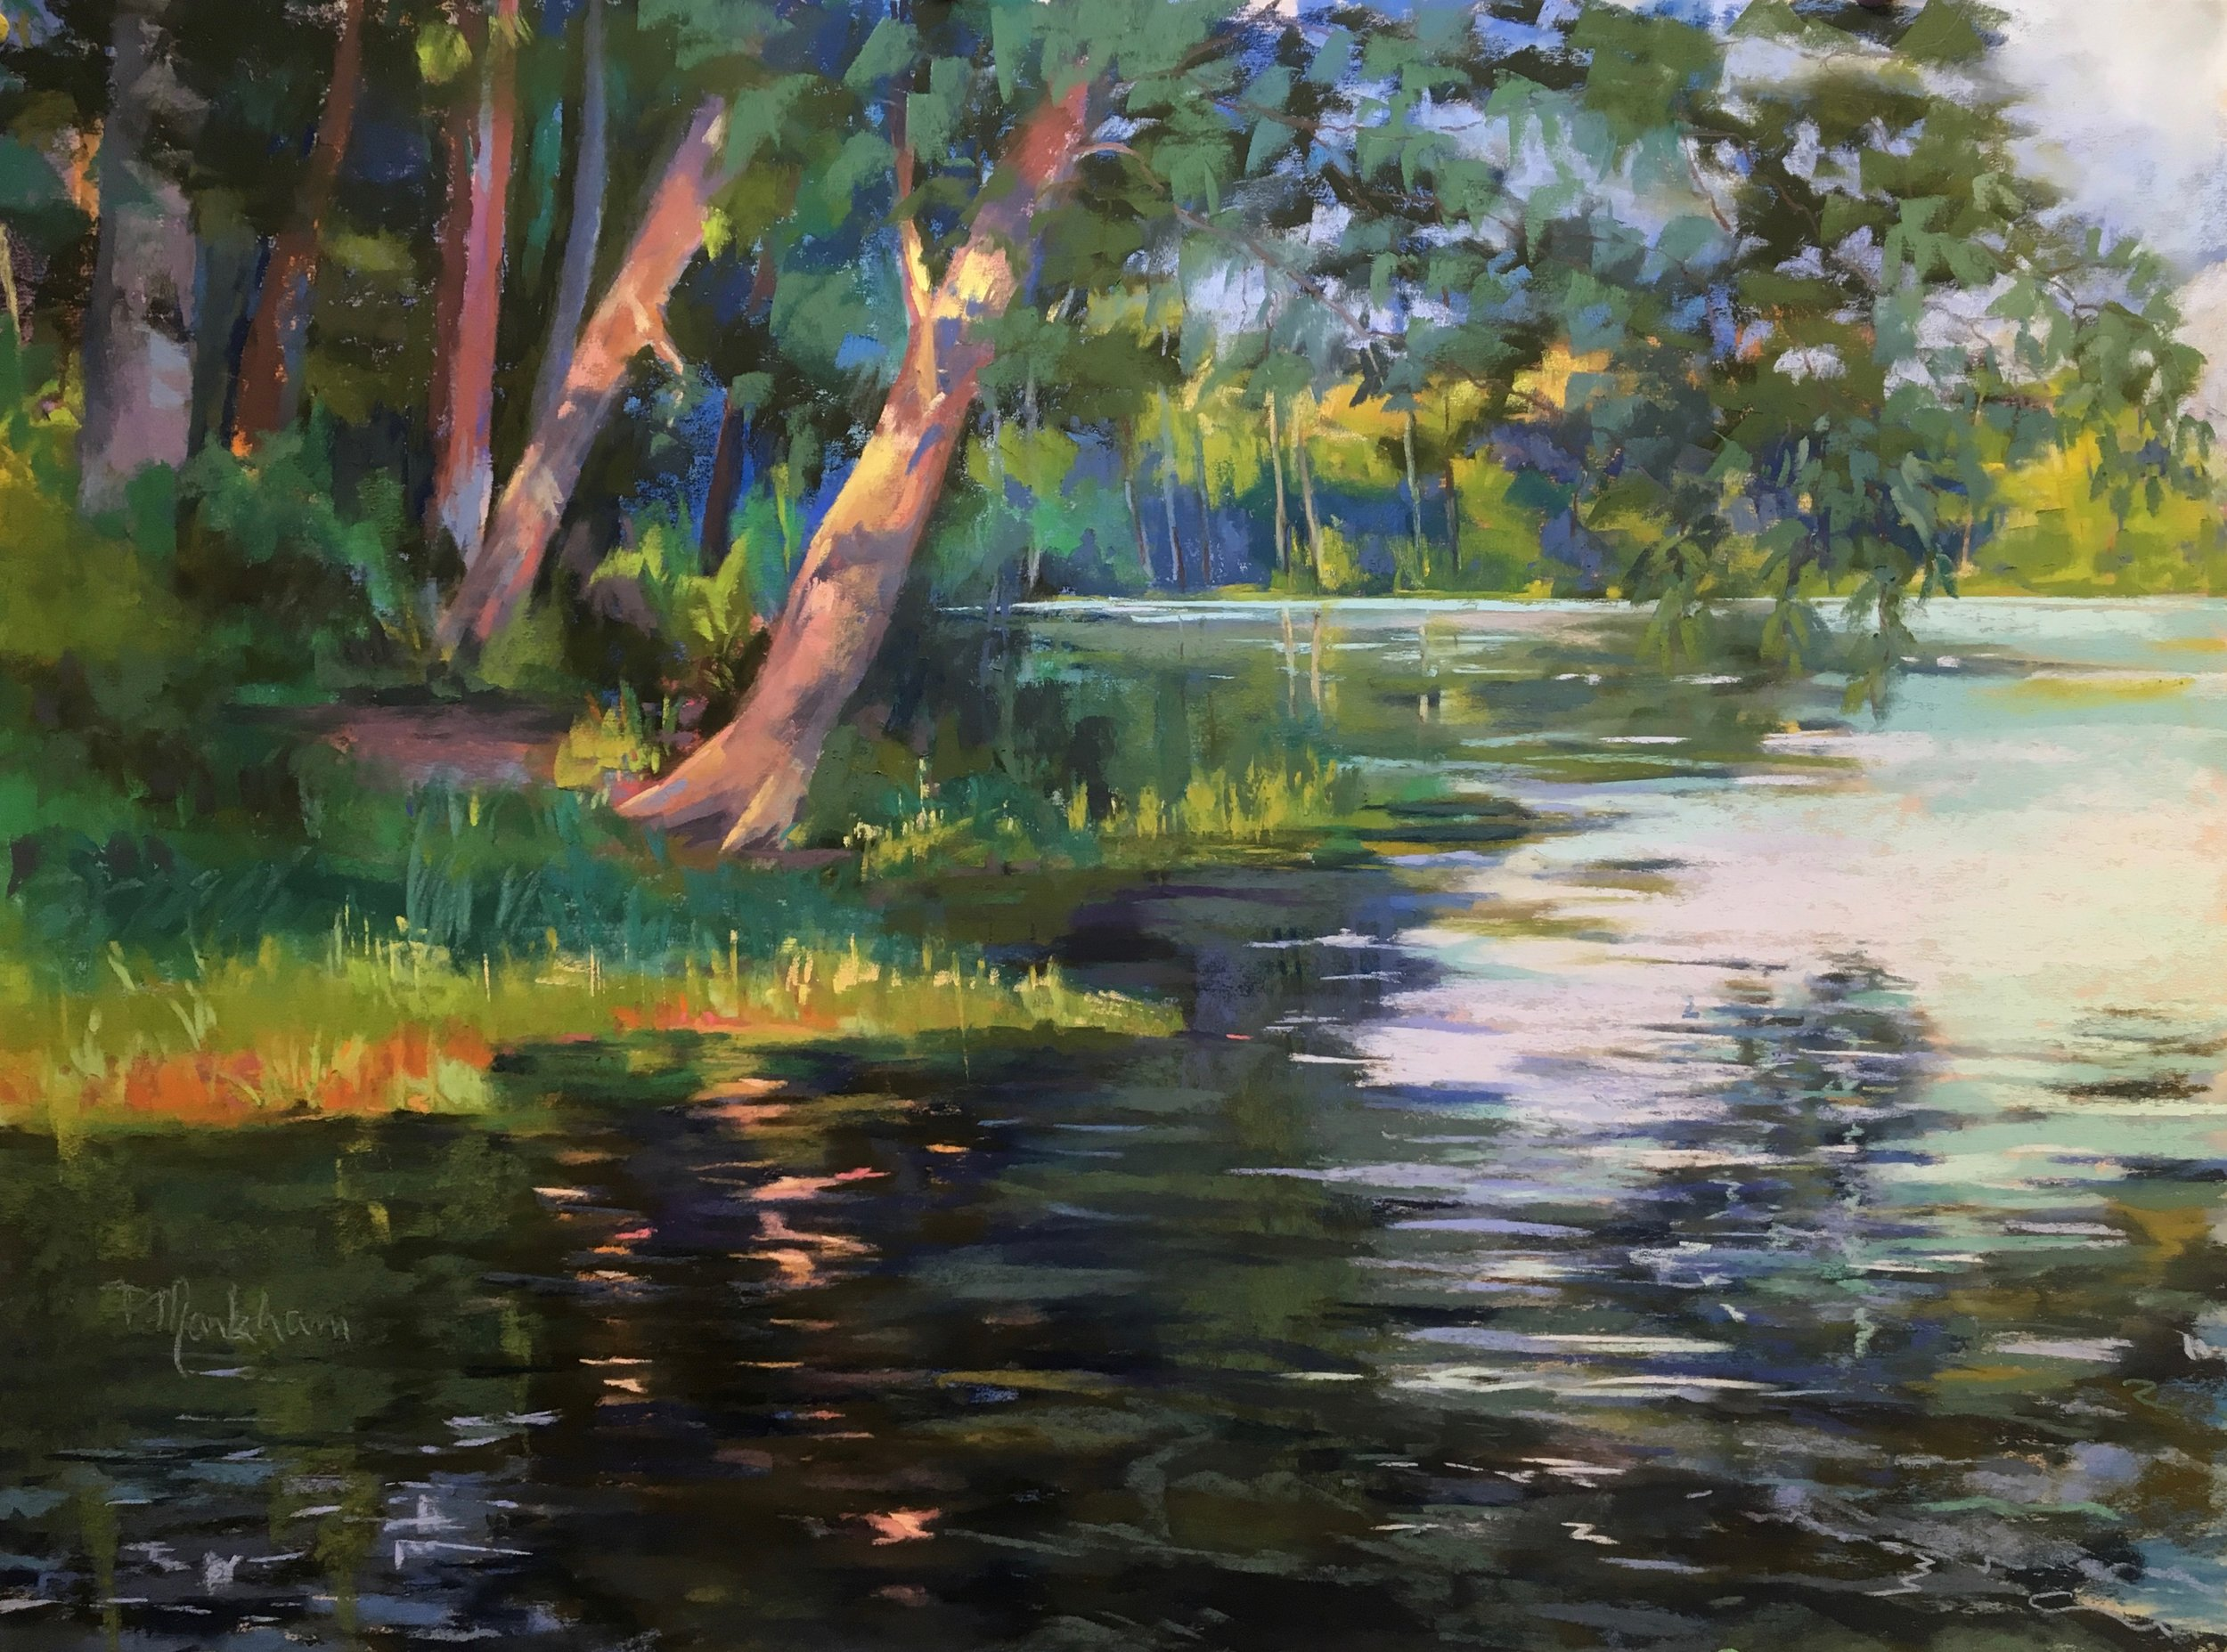 State Lake, Summertime, Available